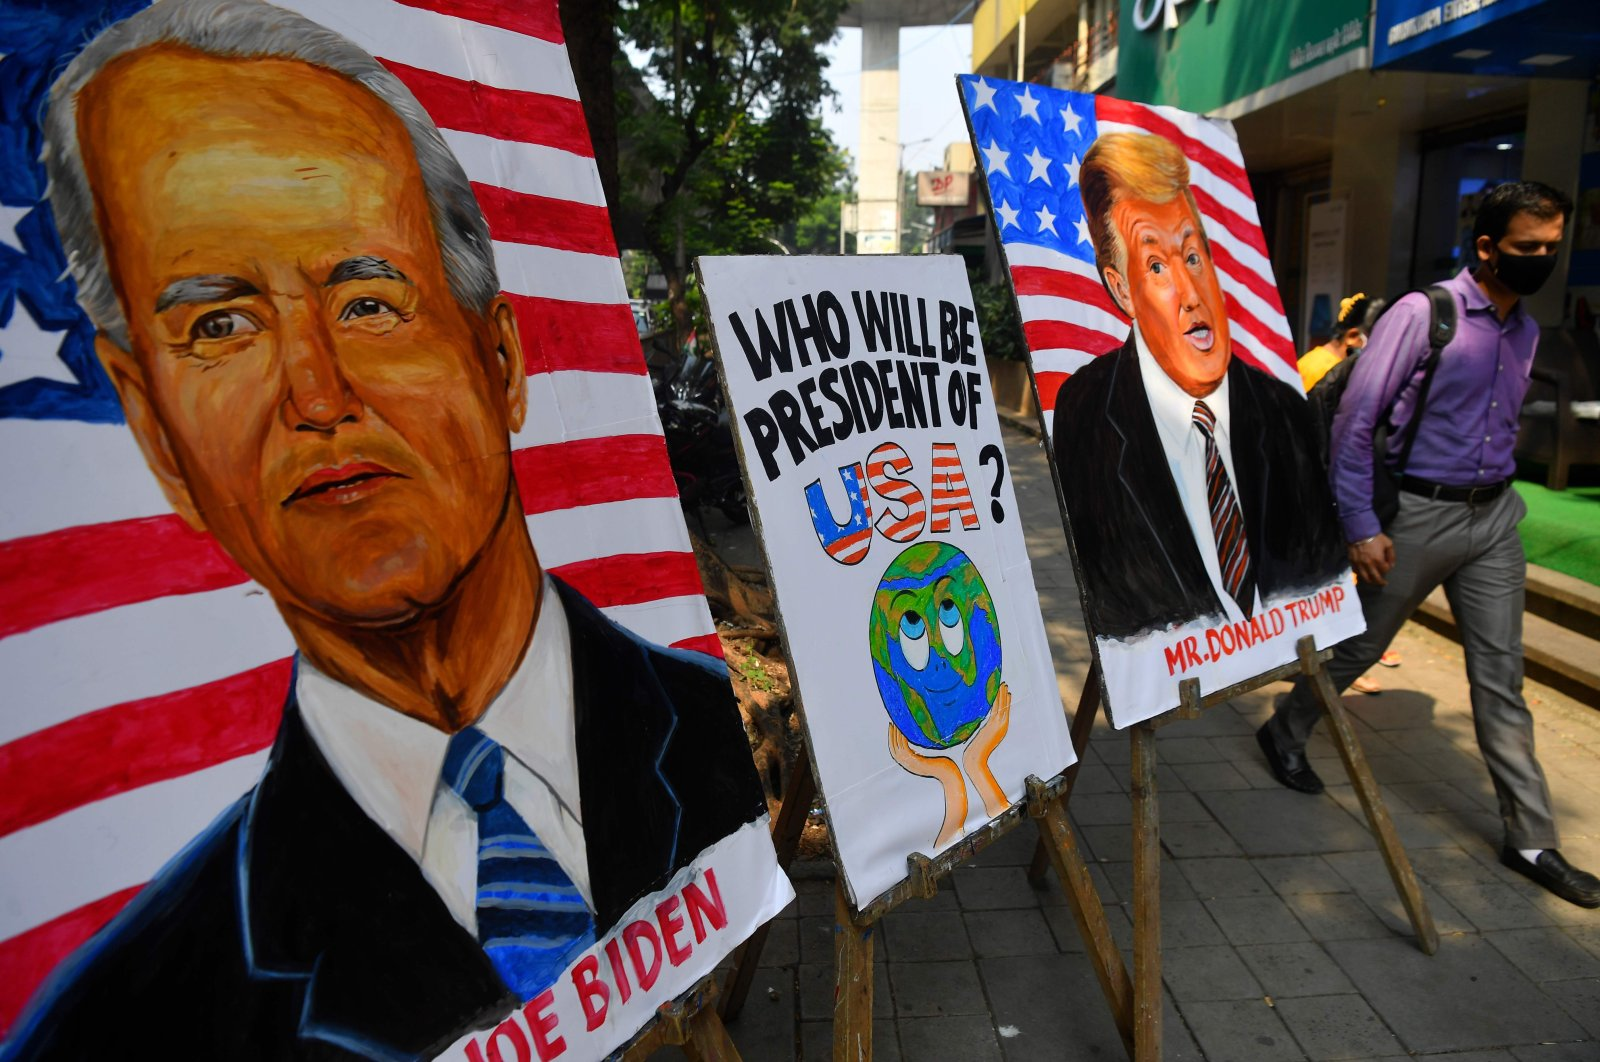 A commuter walks past the painted images of U.S. President Donald Trump and Democratic presidential candidate and former U.S. Vice President Joe Biden ahead of the upcoming presidential elections, outside an art school in Mumbai on Oct. 29, 2020. (AFP Photo)